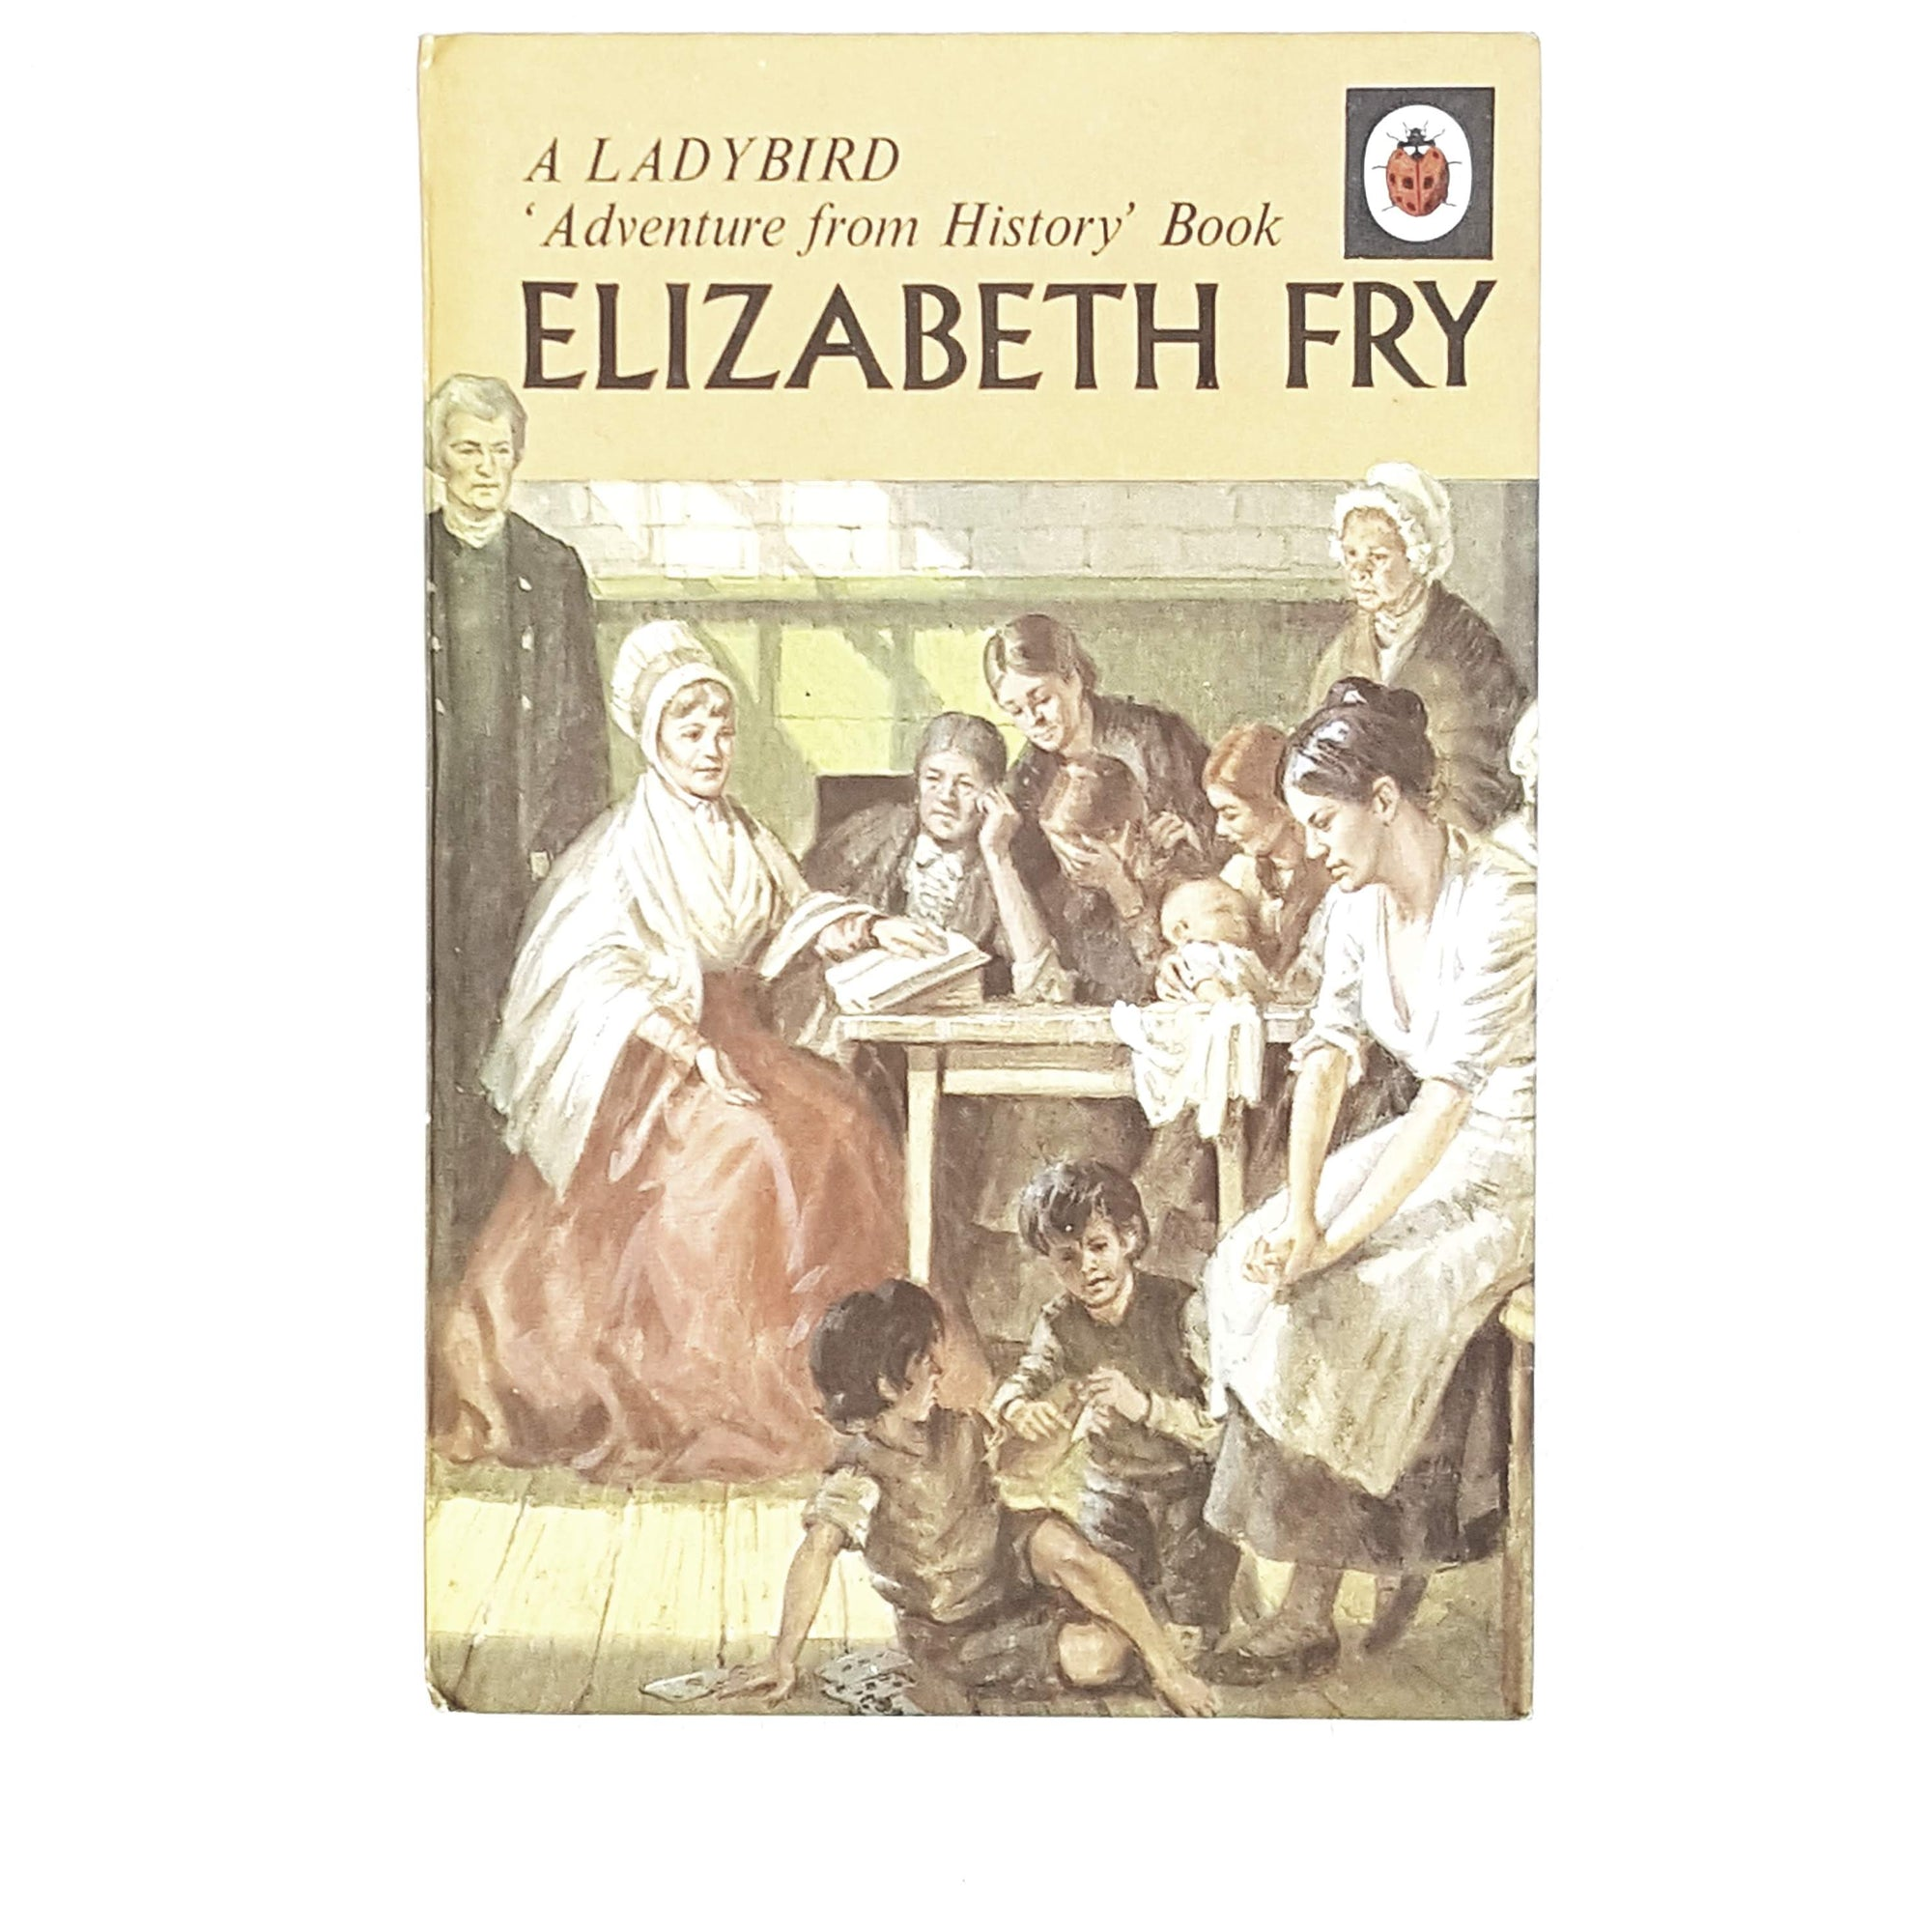 ladybird-history-elizabeth-fry-1974-vintage-kindergarten-books-online-bookstore-country-house-library